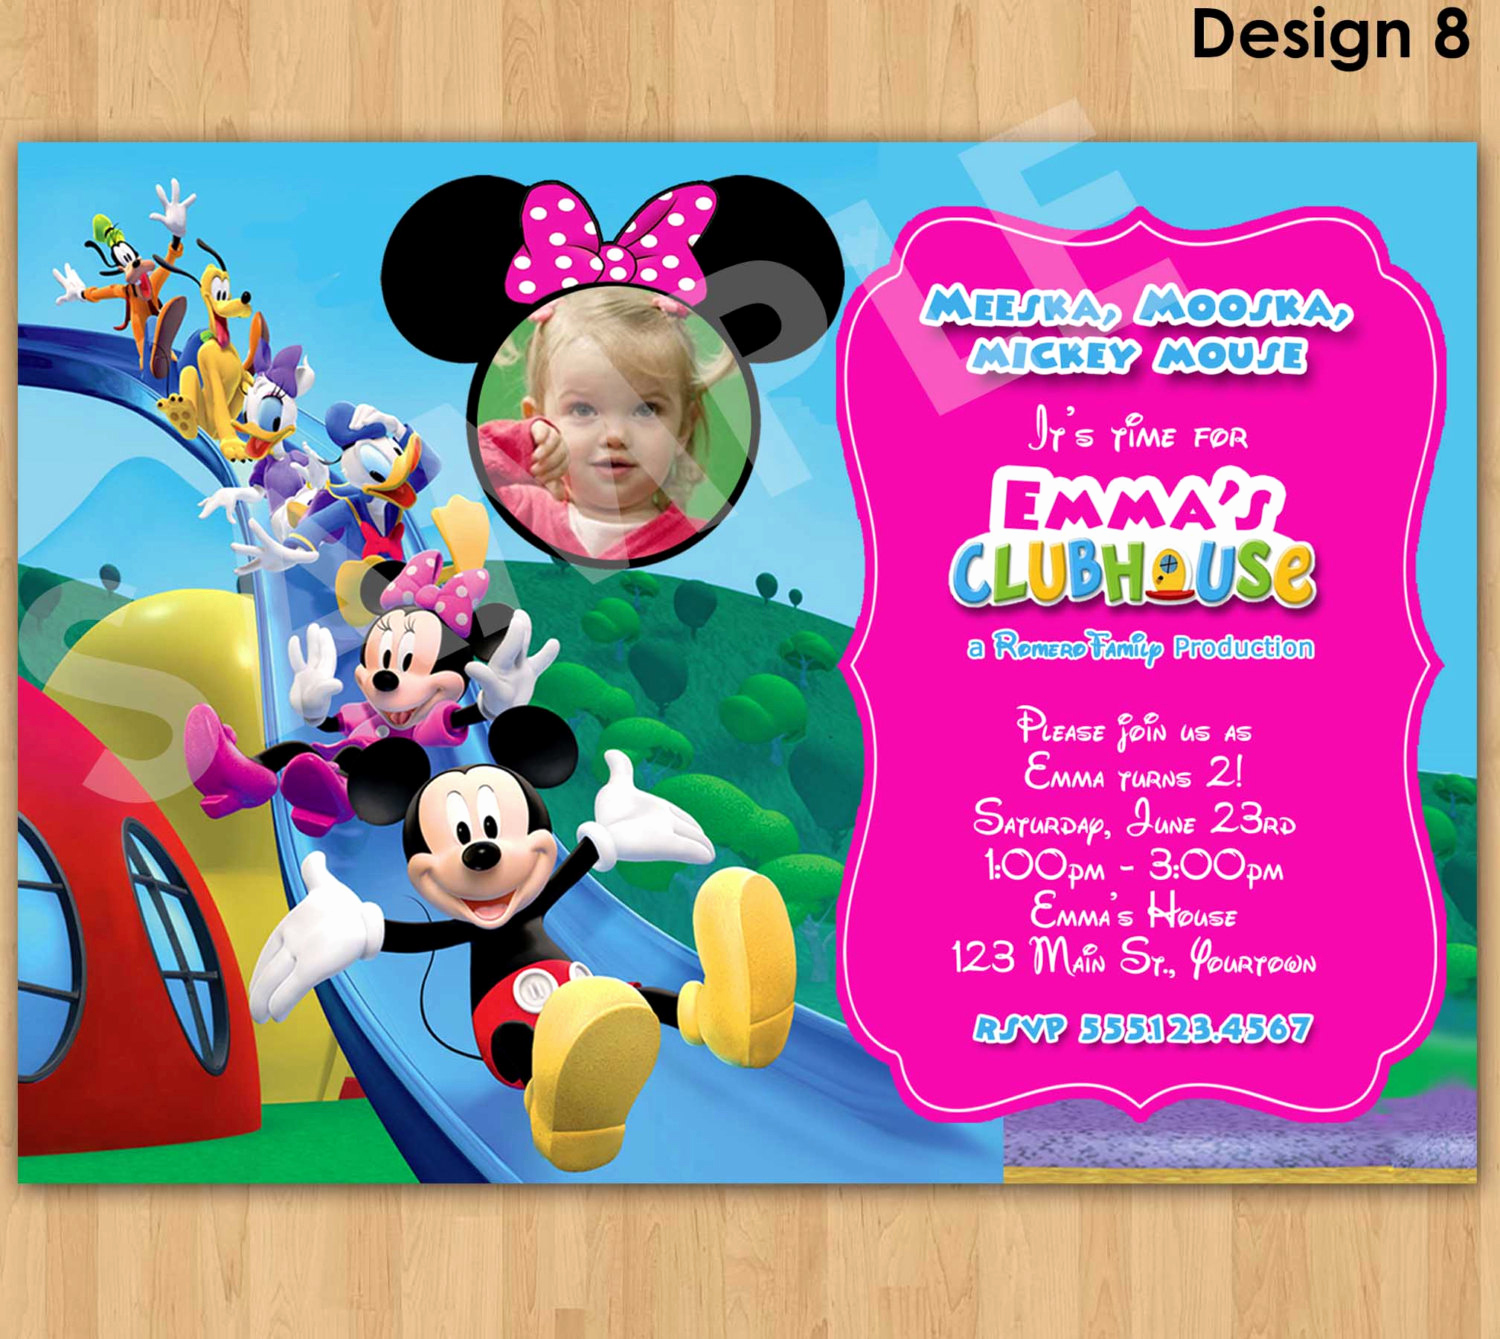 Mickey Mouse Clubhouse Invitations New Minnie Mouse Invitation Mickey Mouse Clubhouse Invitation